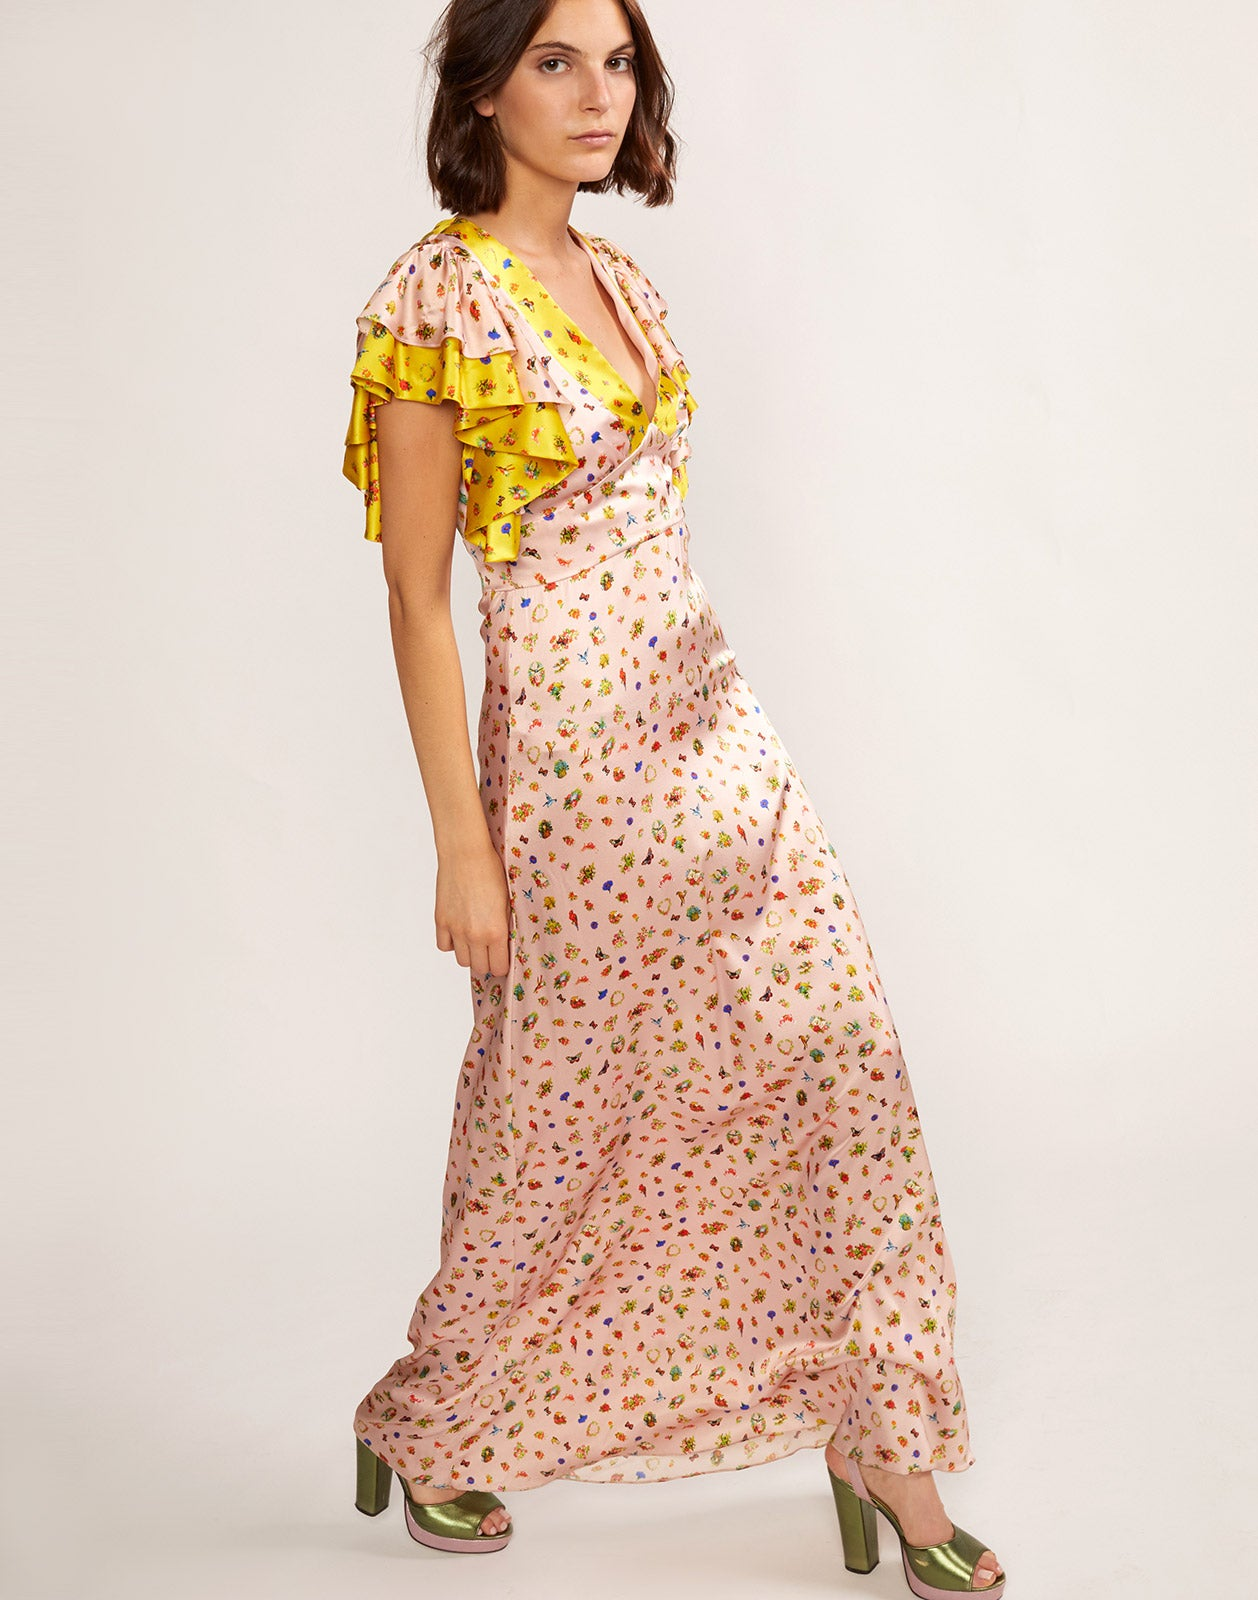 Alternate view of Pamela silk maxi dress with layered flutter sleeves